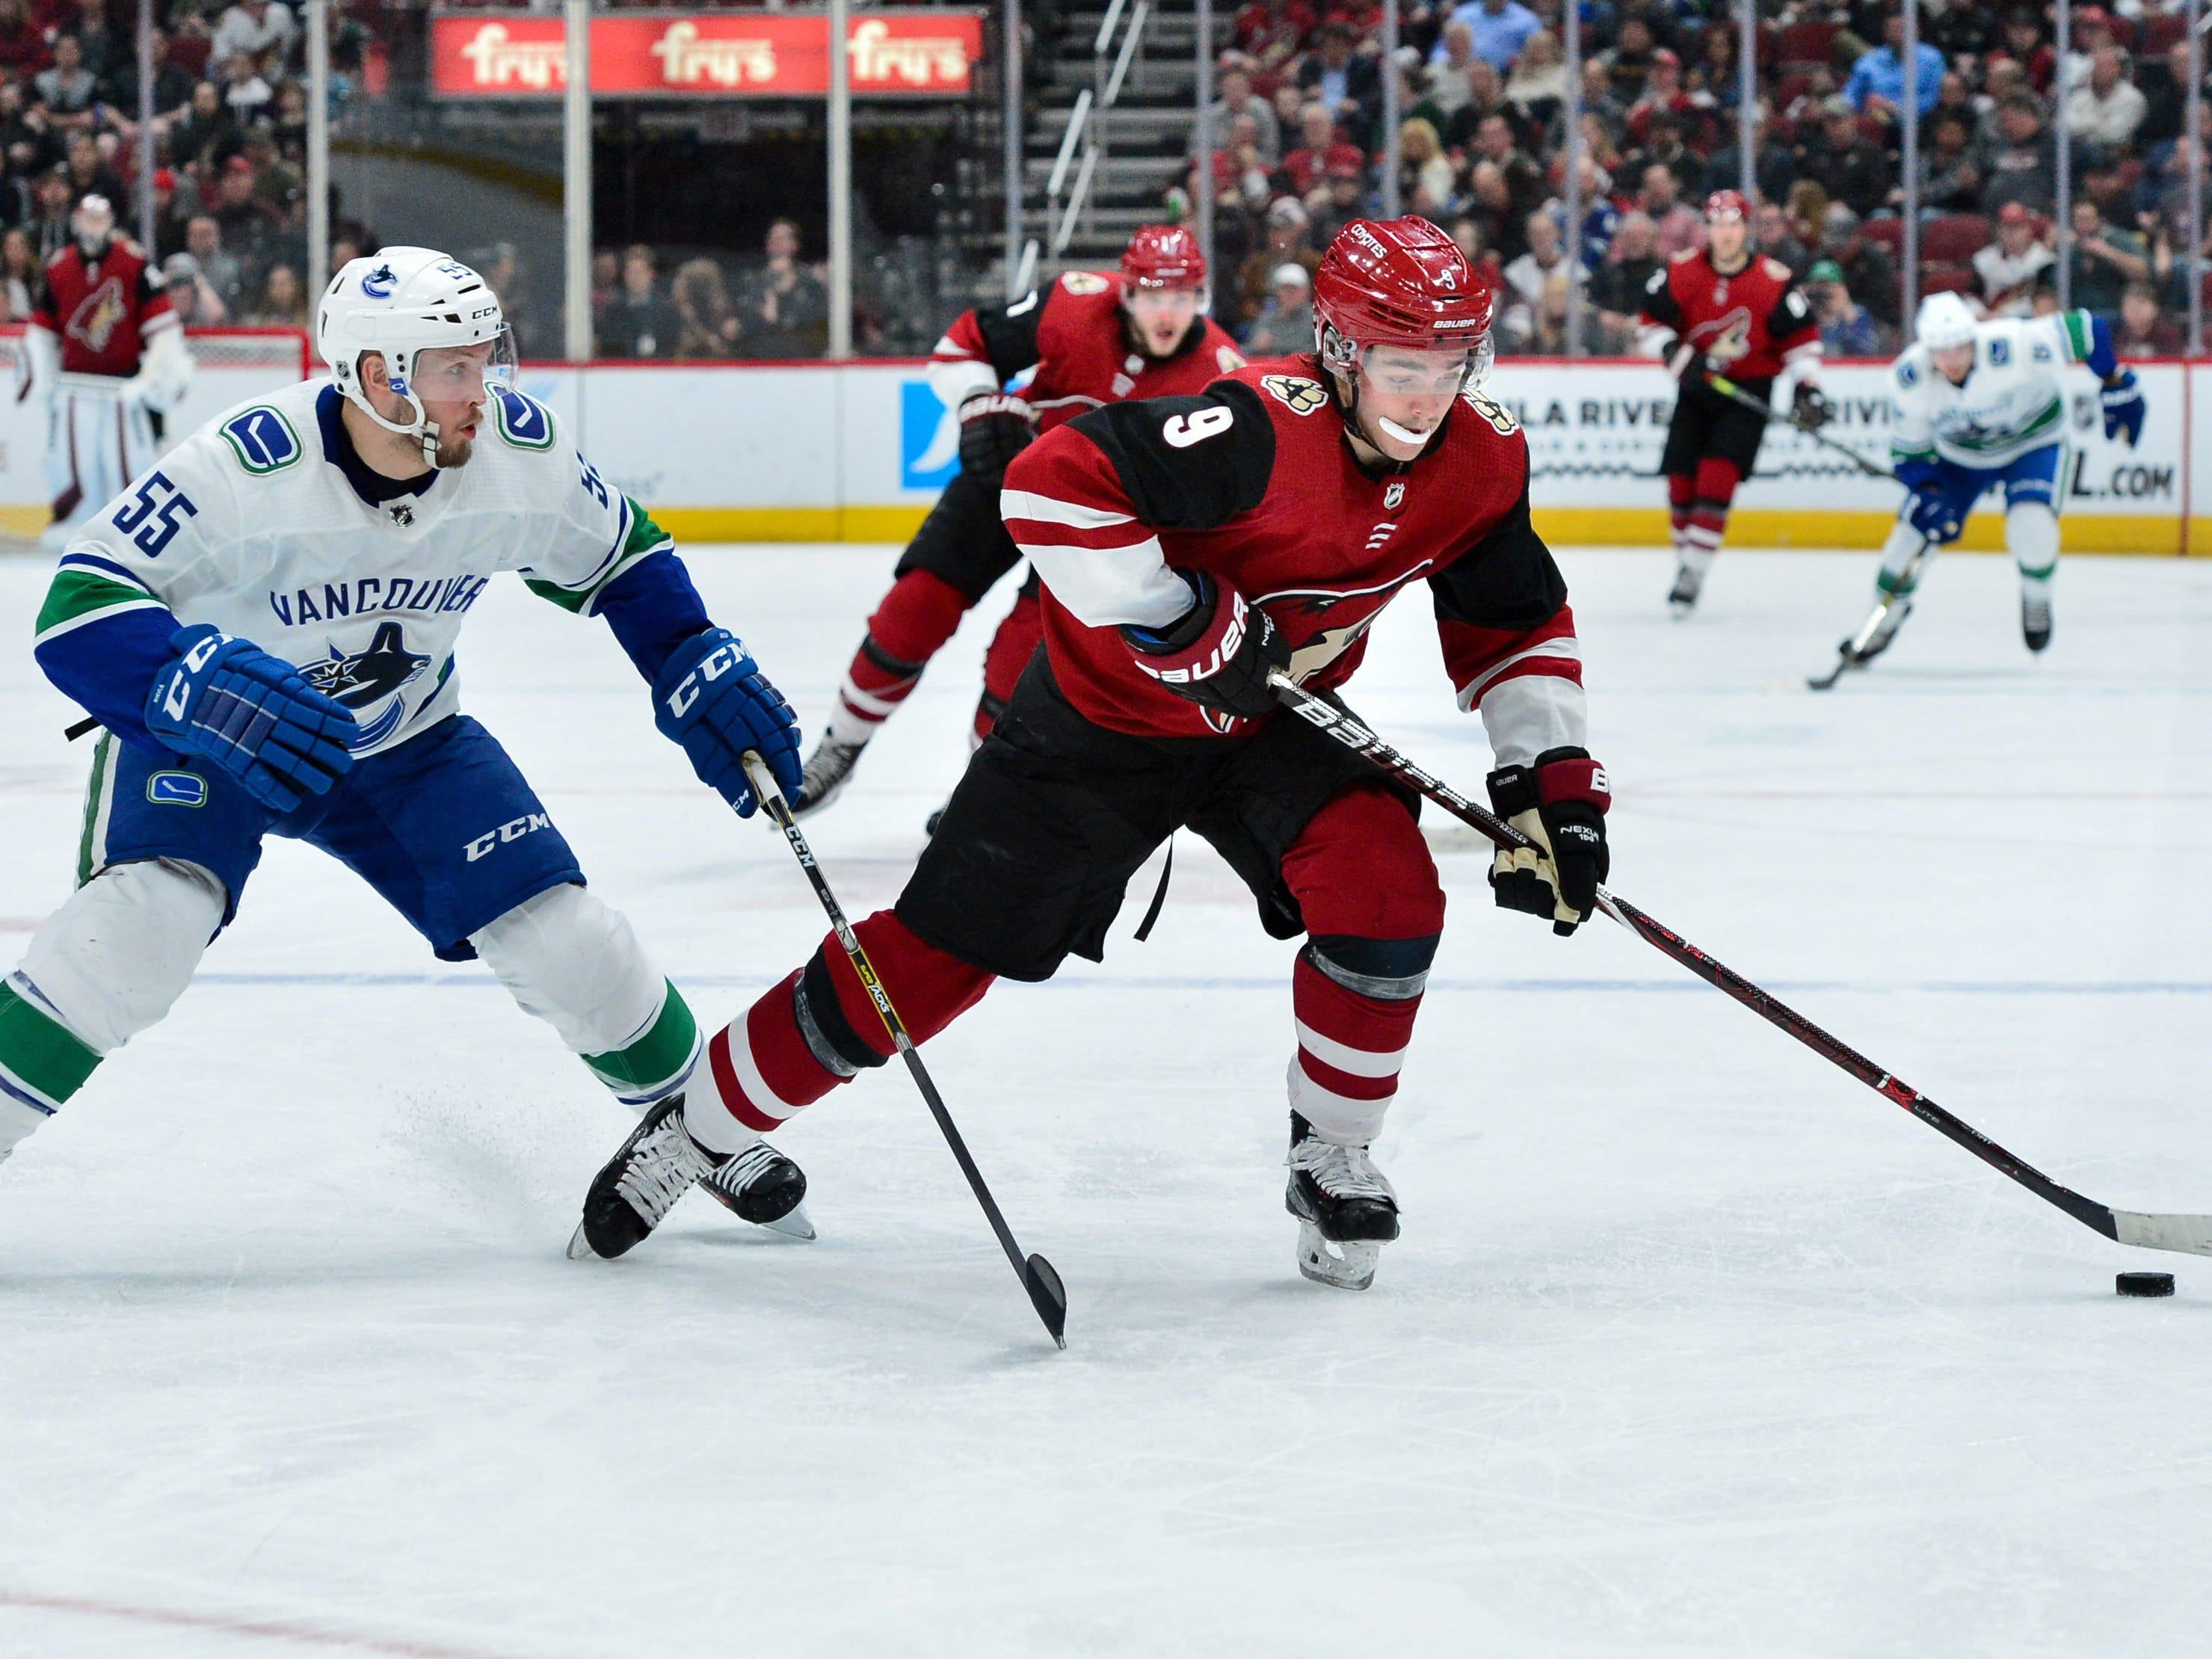 Feb 28, 2019; Glendale, AZ, USA; Arizona Coyotes center Clayton Keller (9) skates with the puck as Vancouver Canucks defenseman Alex Biega (55) defends during the second period at Gila River Arena.